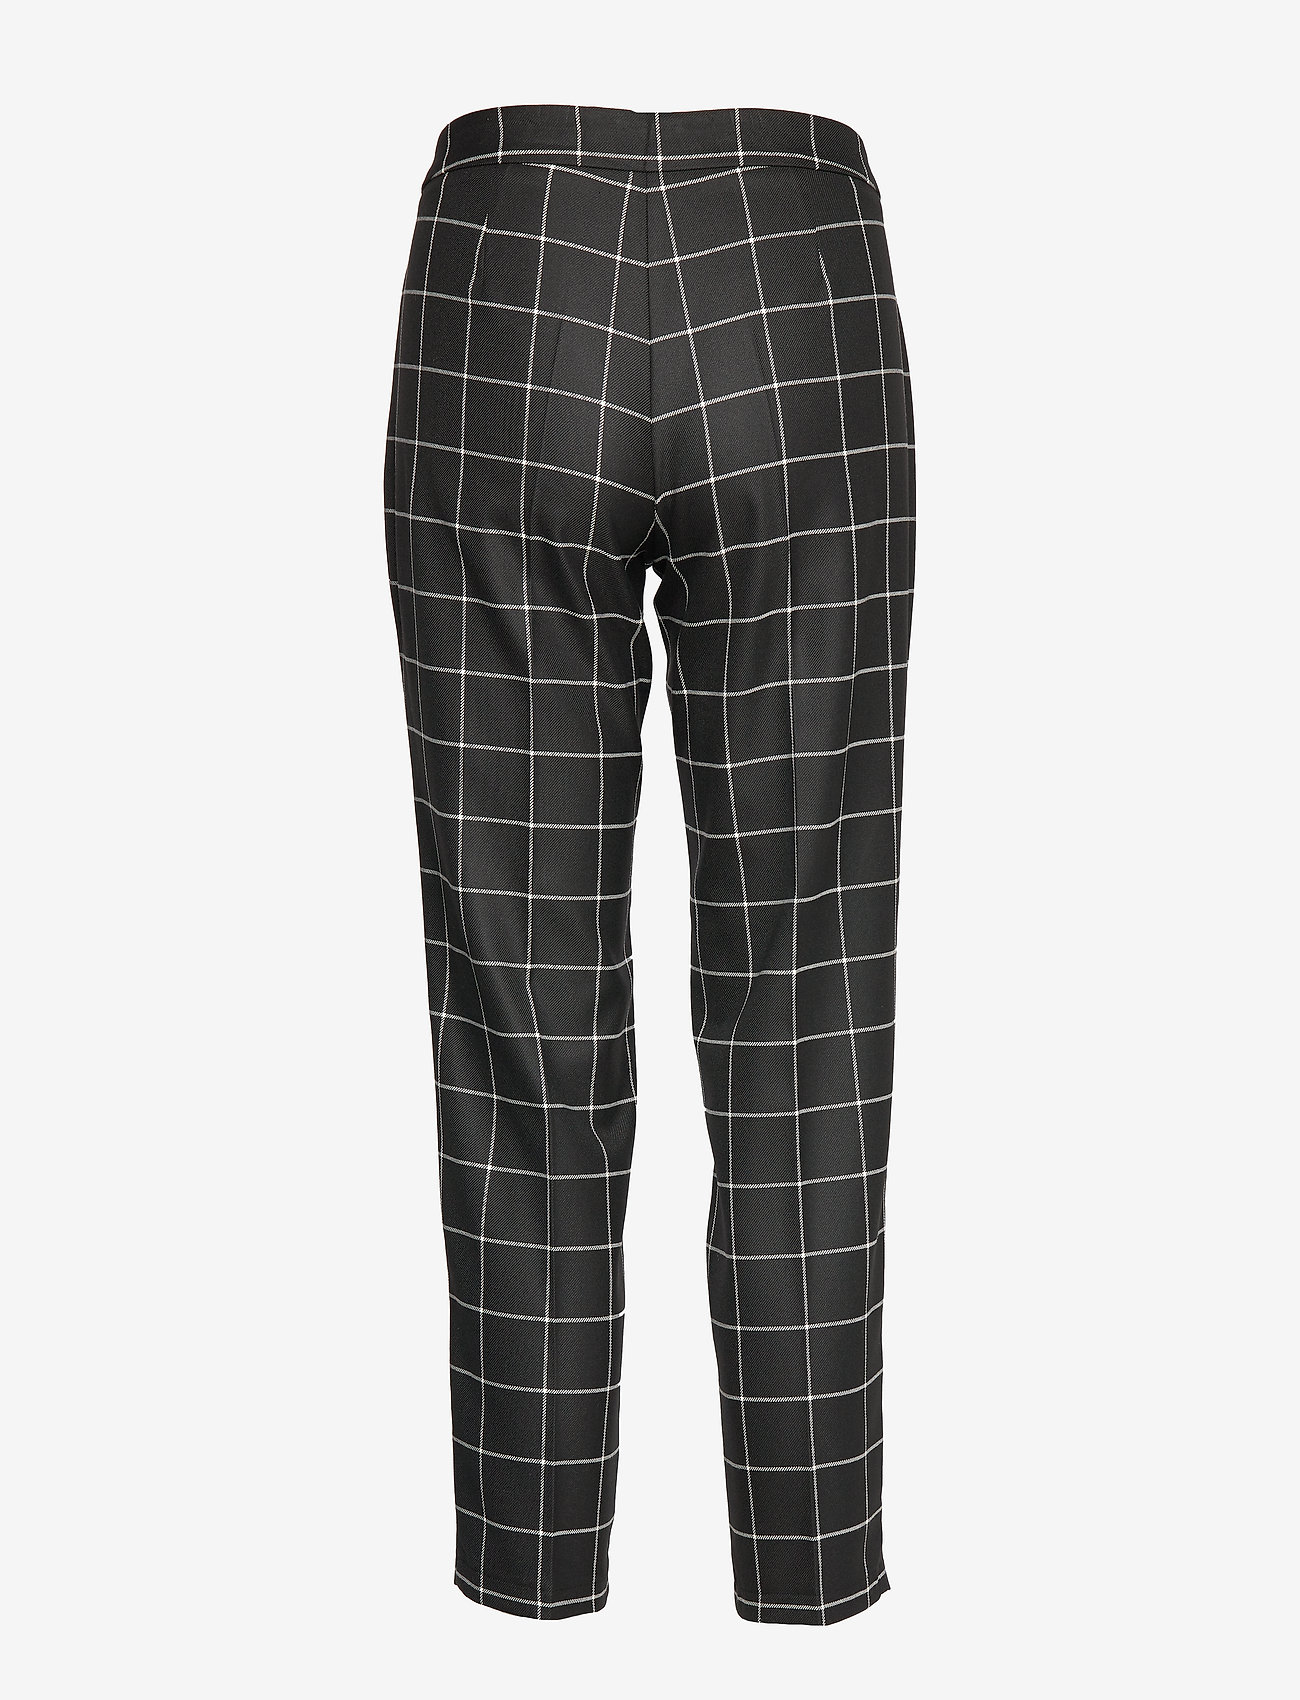 Crop Leisure Trouser (Black Patterned) (58.49 €) - Taifun DsWqG